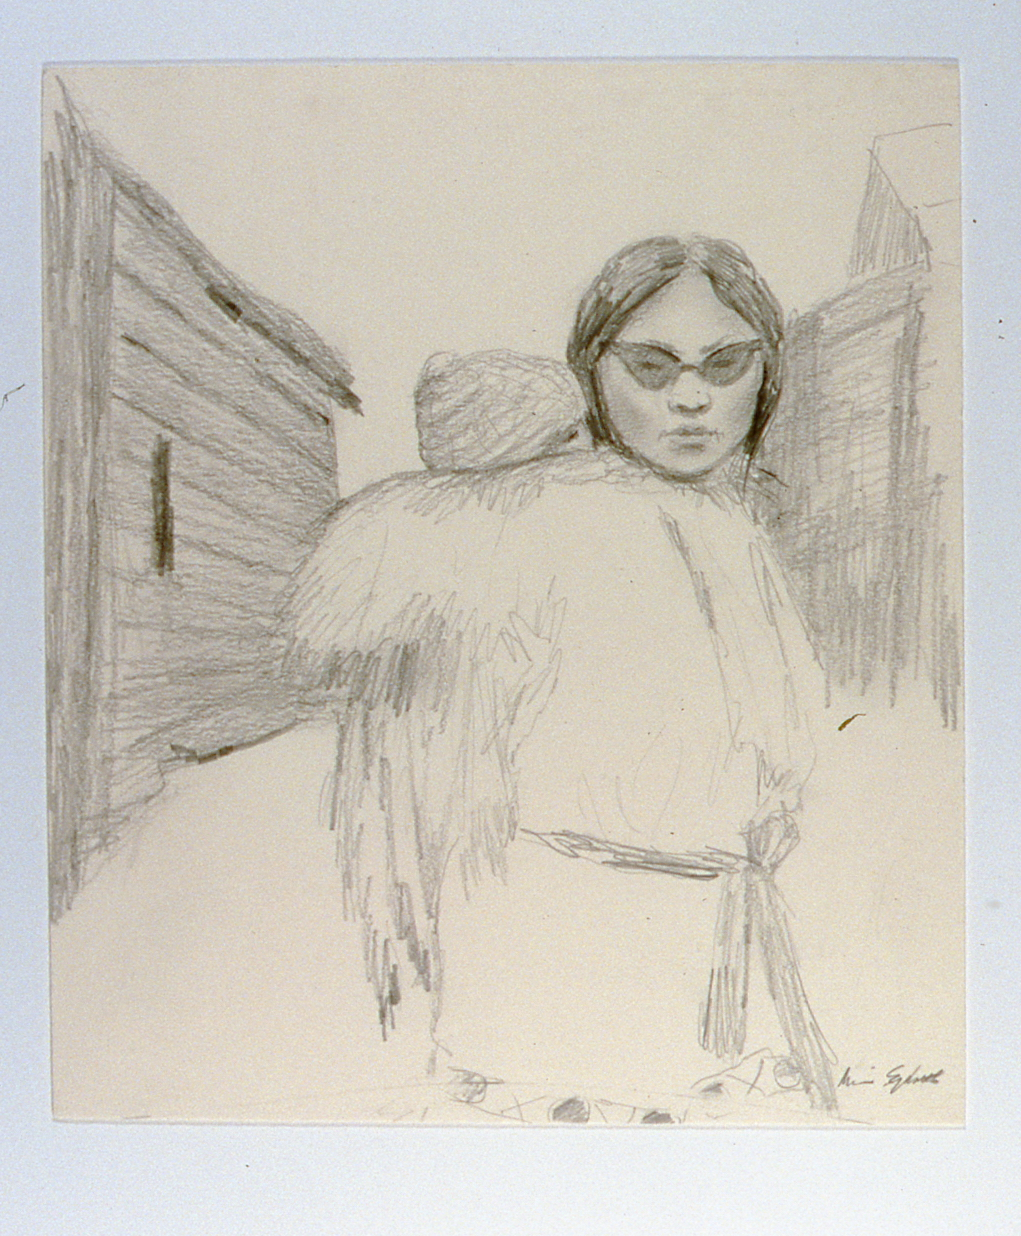 """Sketch for  Saturday Afternoon , 1982, Minn Sjølseth, graphite, 11 1/2"""" x 9 1/2"""", 2000.04.06, gift of Al and Laila Campbell"""